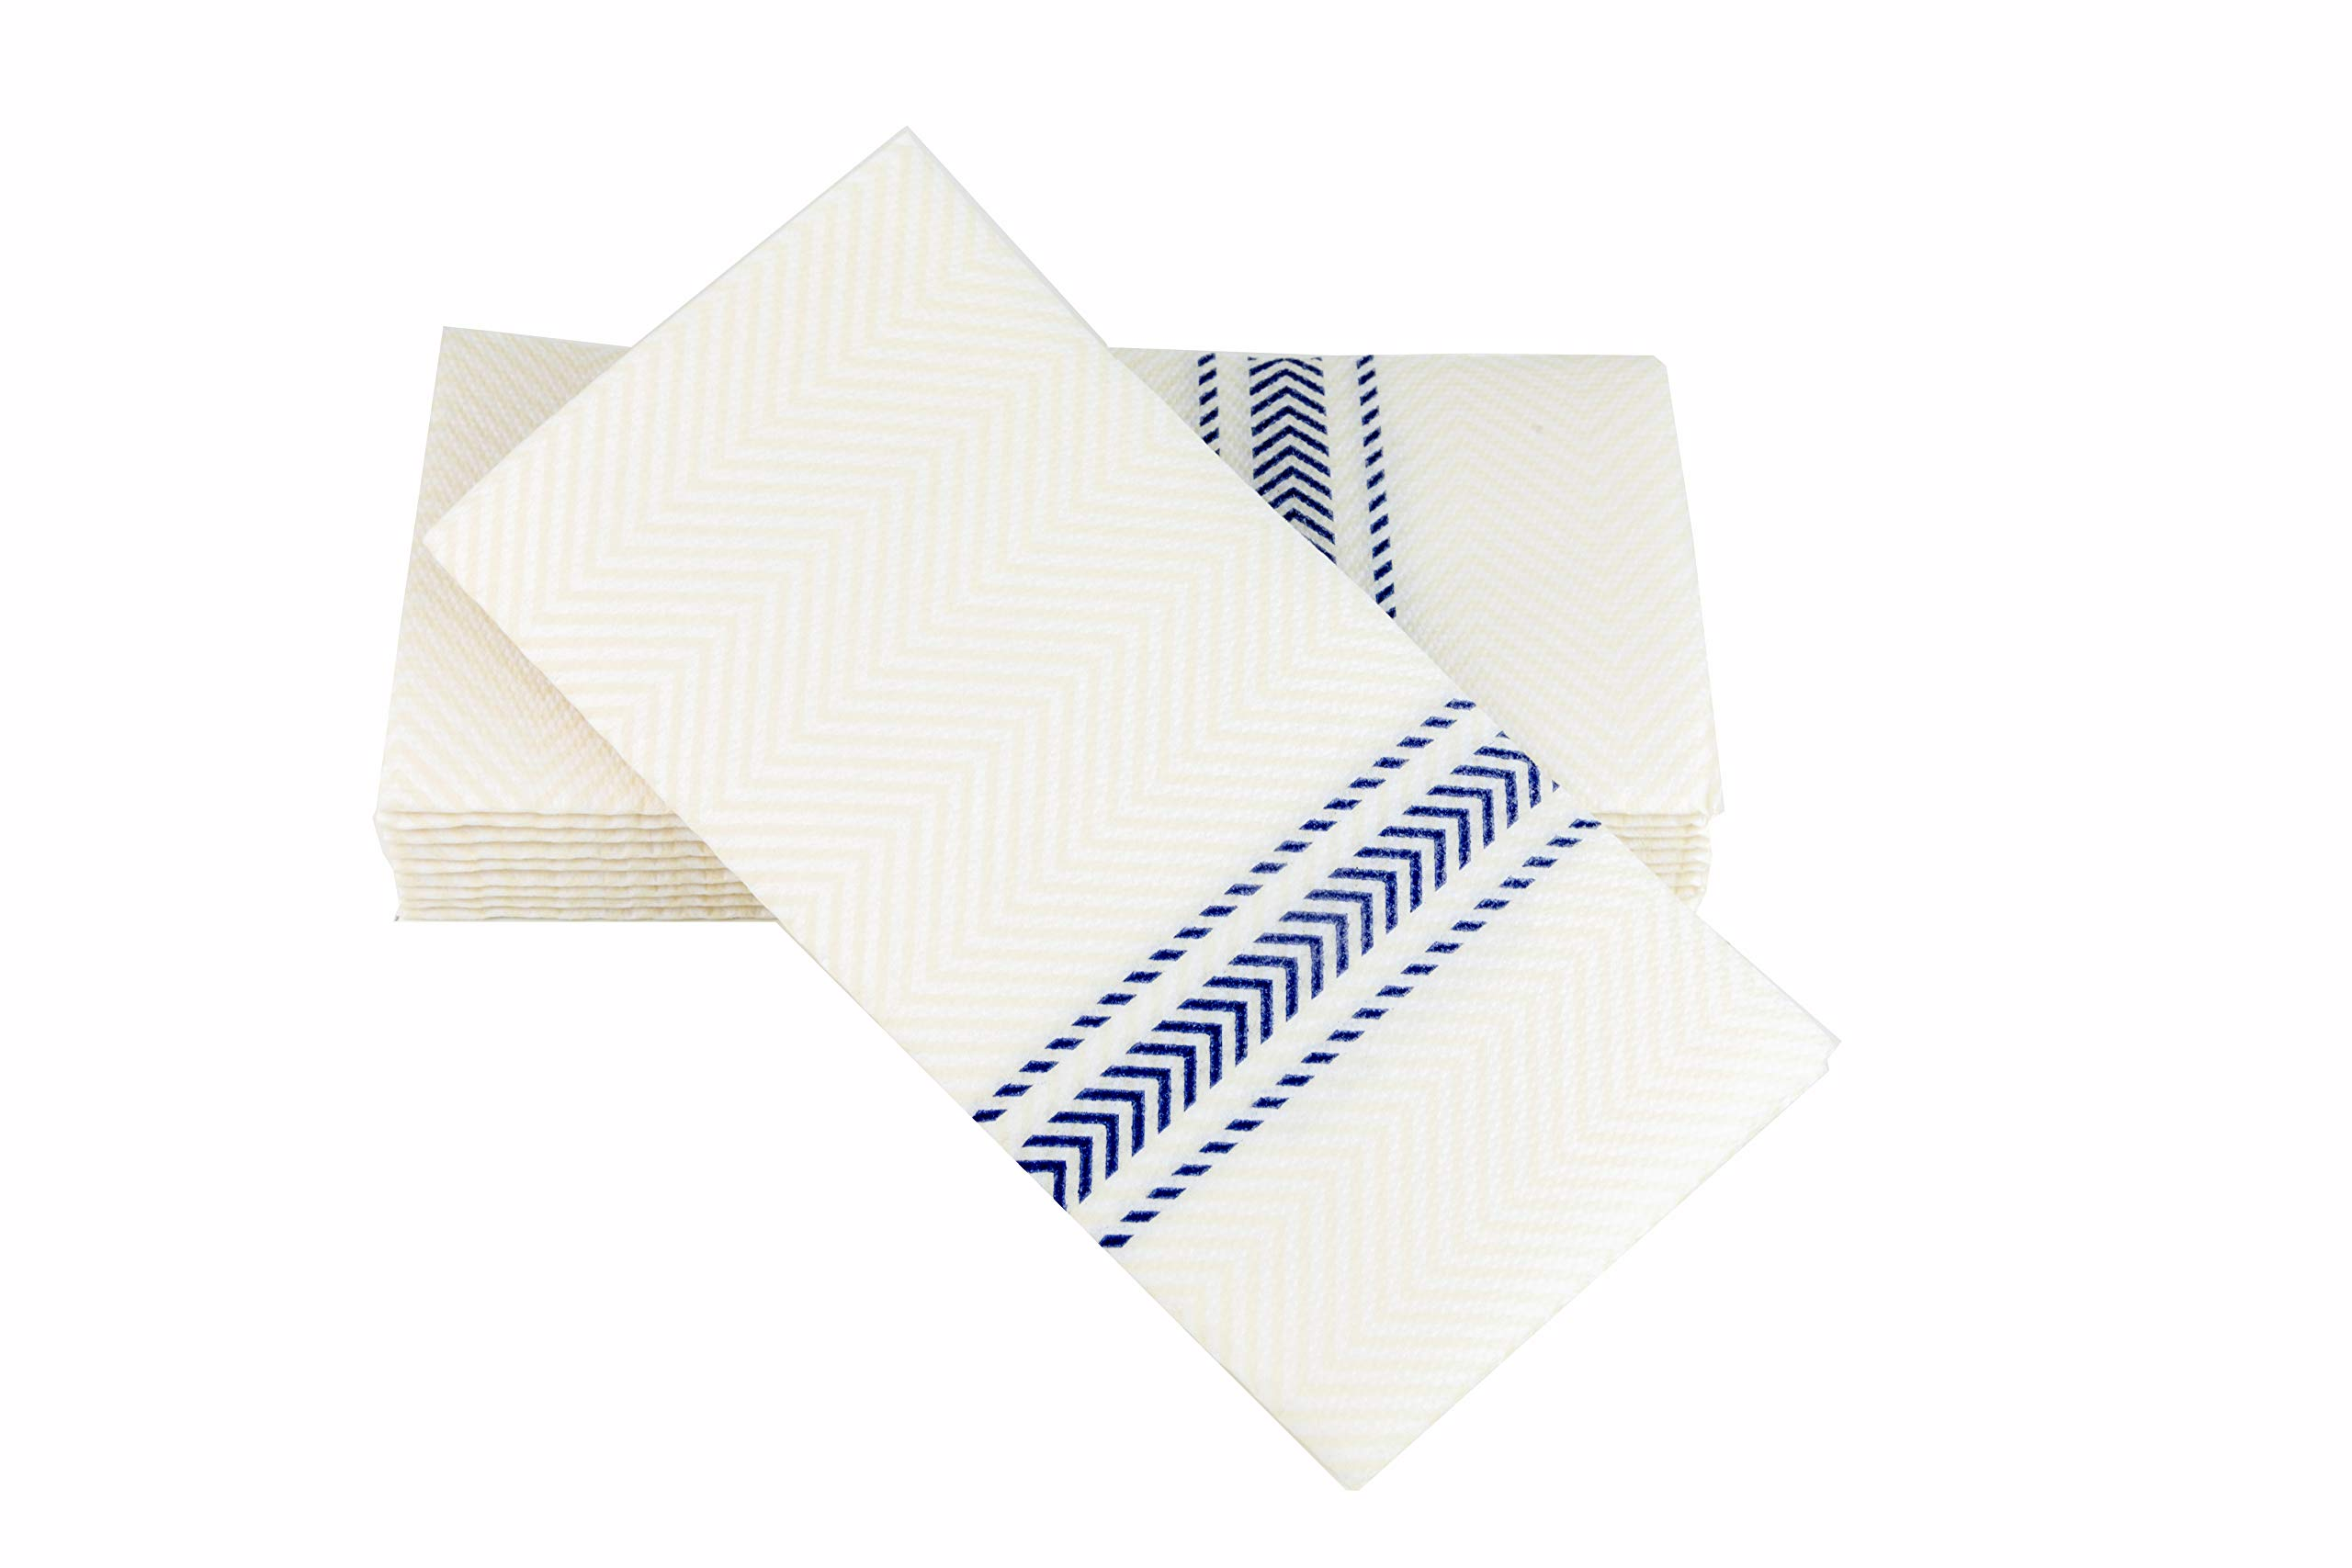 ClassicPoint Dinner Napkins -Blue Bistro Stripe - Decorative & Disposable Bistro Napkins - Soft, Absorbent & Durable (15.5''x15.5'' - Box of 50)